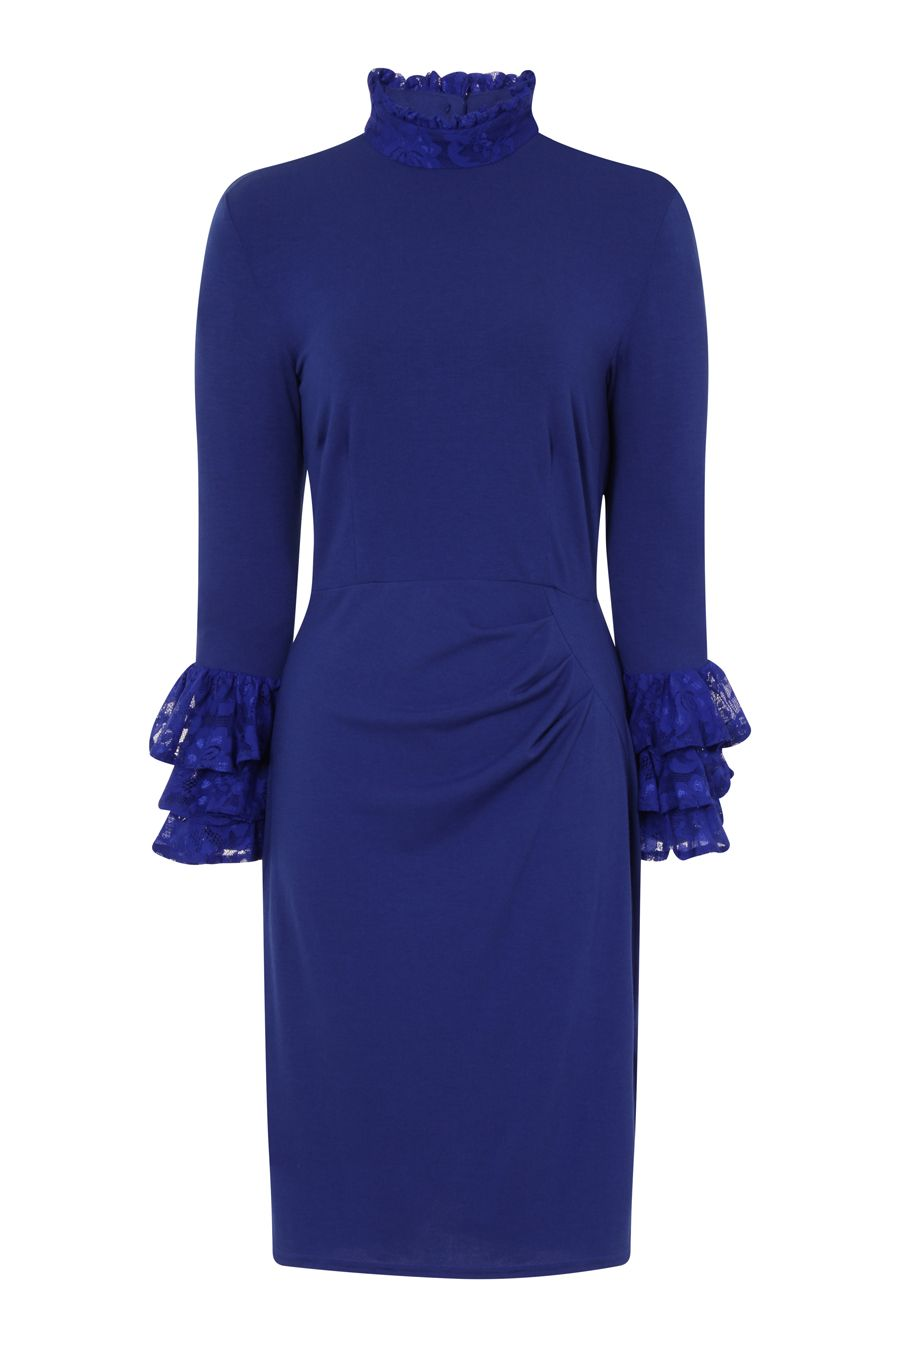 HotSquash Clever Fabric HighNeck Lace Detail Dress, Royal Blue